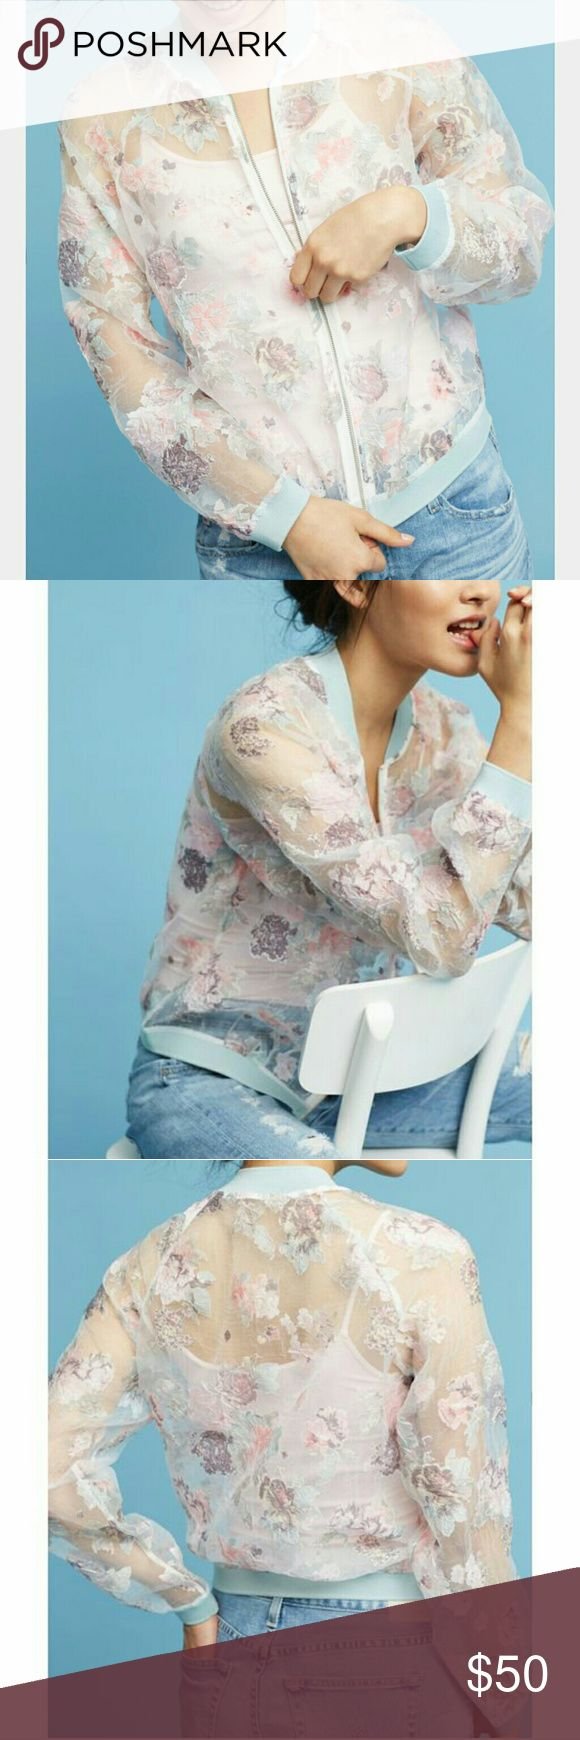 Maeve textured bomber jacket Light and airy, this spring-ready bomber is inspired by watercolor paint, with an all-over textured floral pattern in the pretty pastels that define the season.  Sheer viscose, polyester Zip front Hand wash Only worn once Anthropologie Jackets & Coats